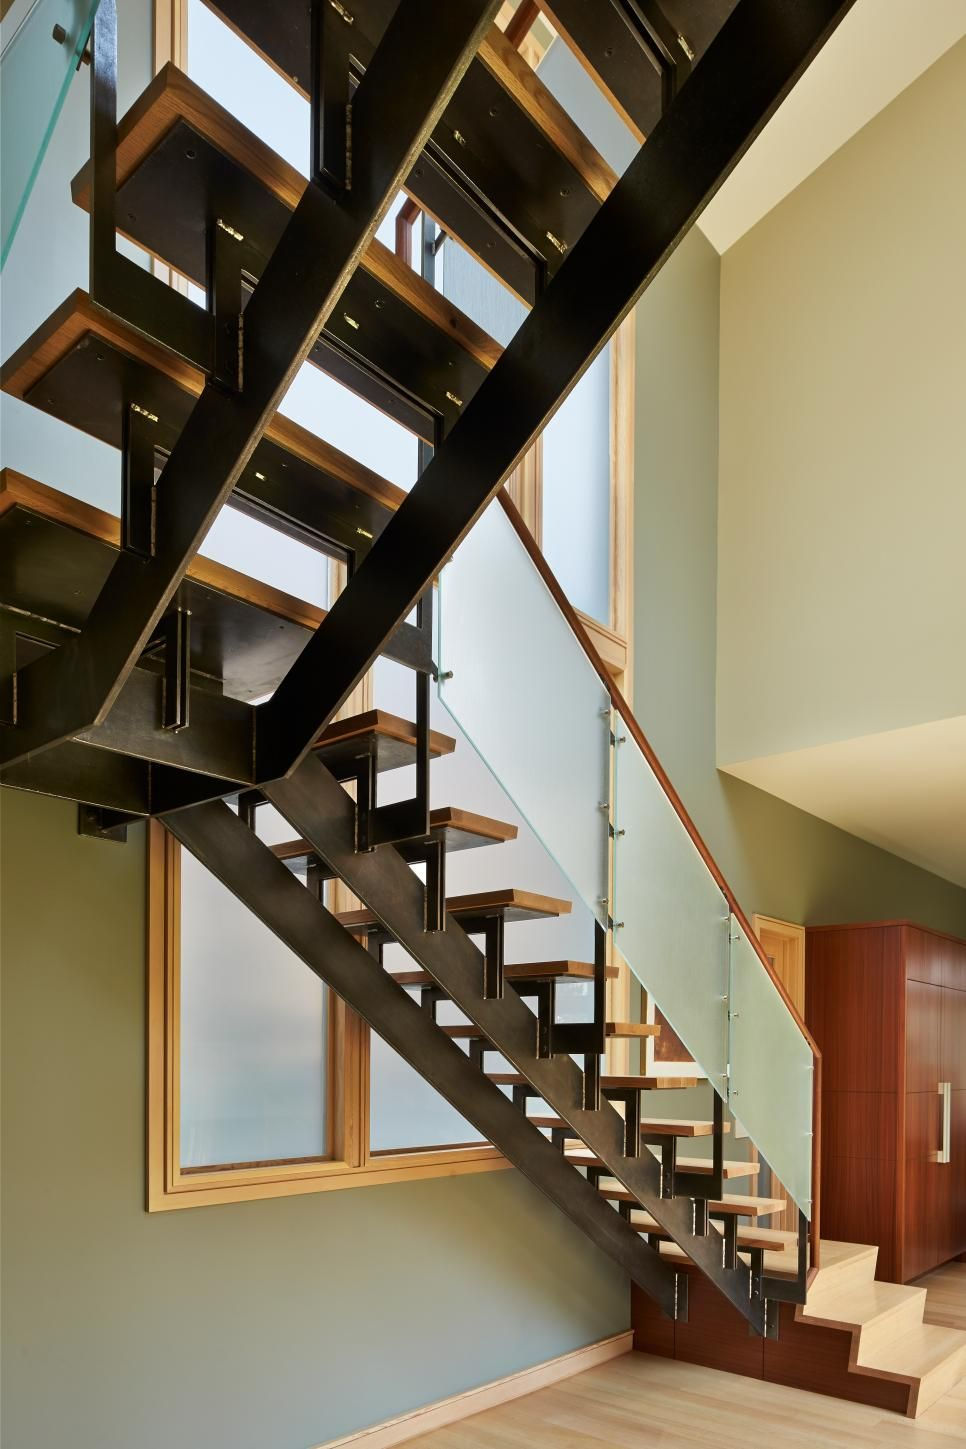 Design Floating Steps a floating staircase with black metal base frosted glass railing and wood steps